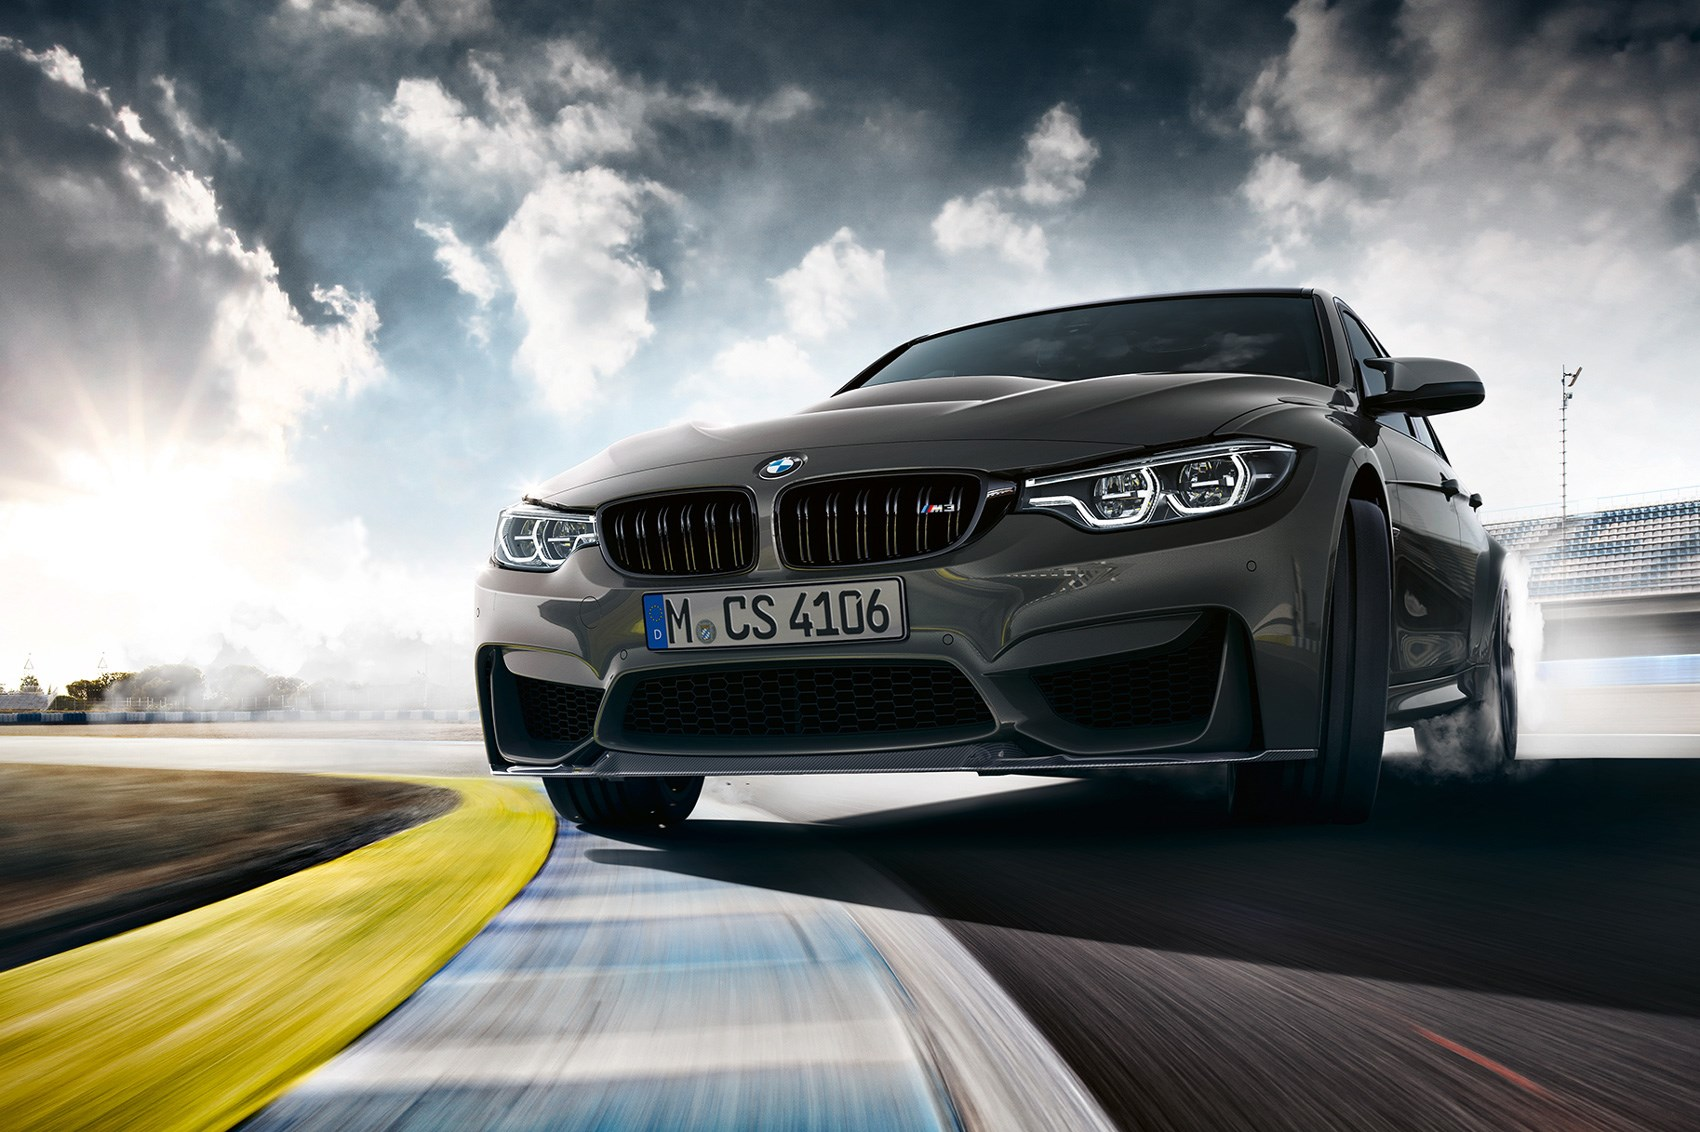 BMW confirms M3 CS